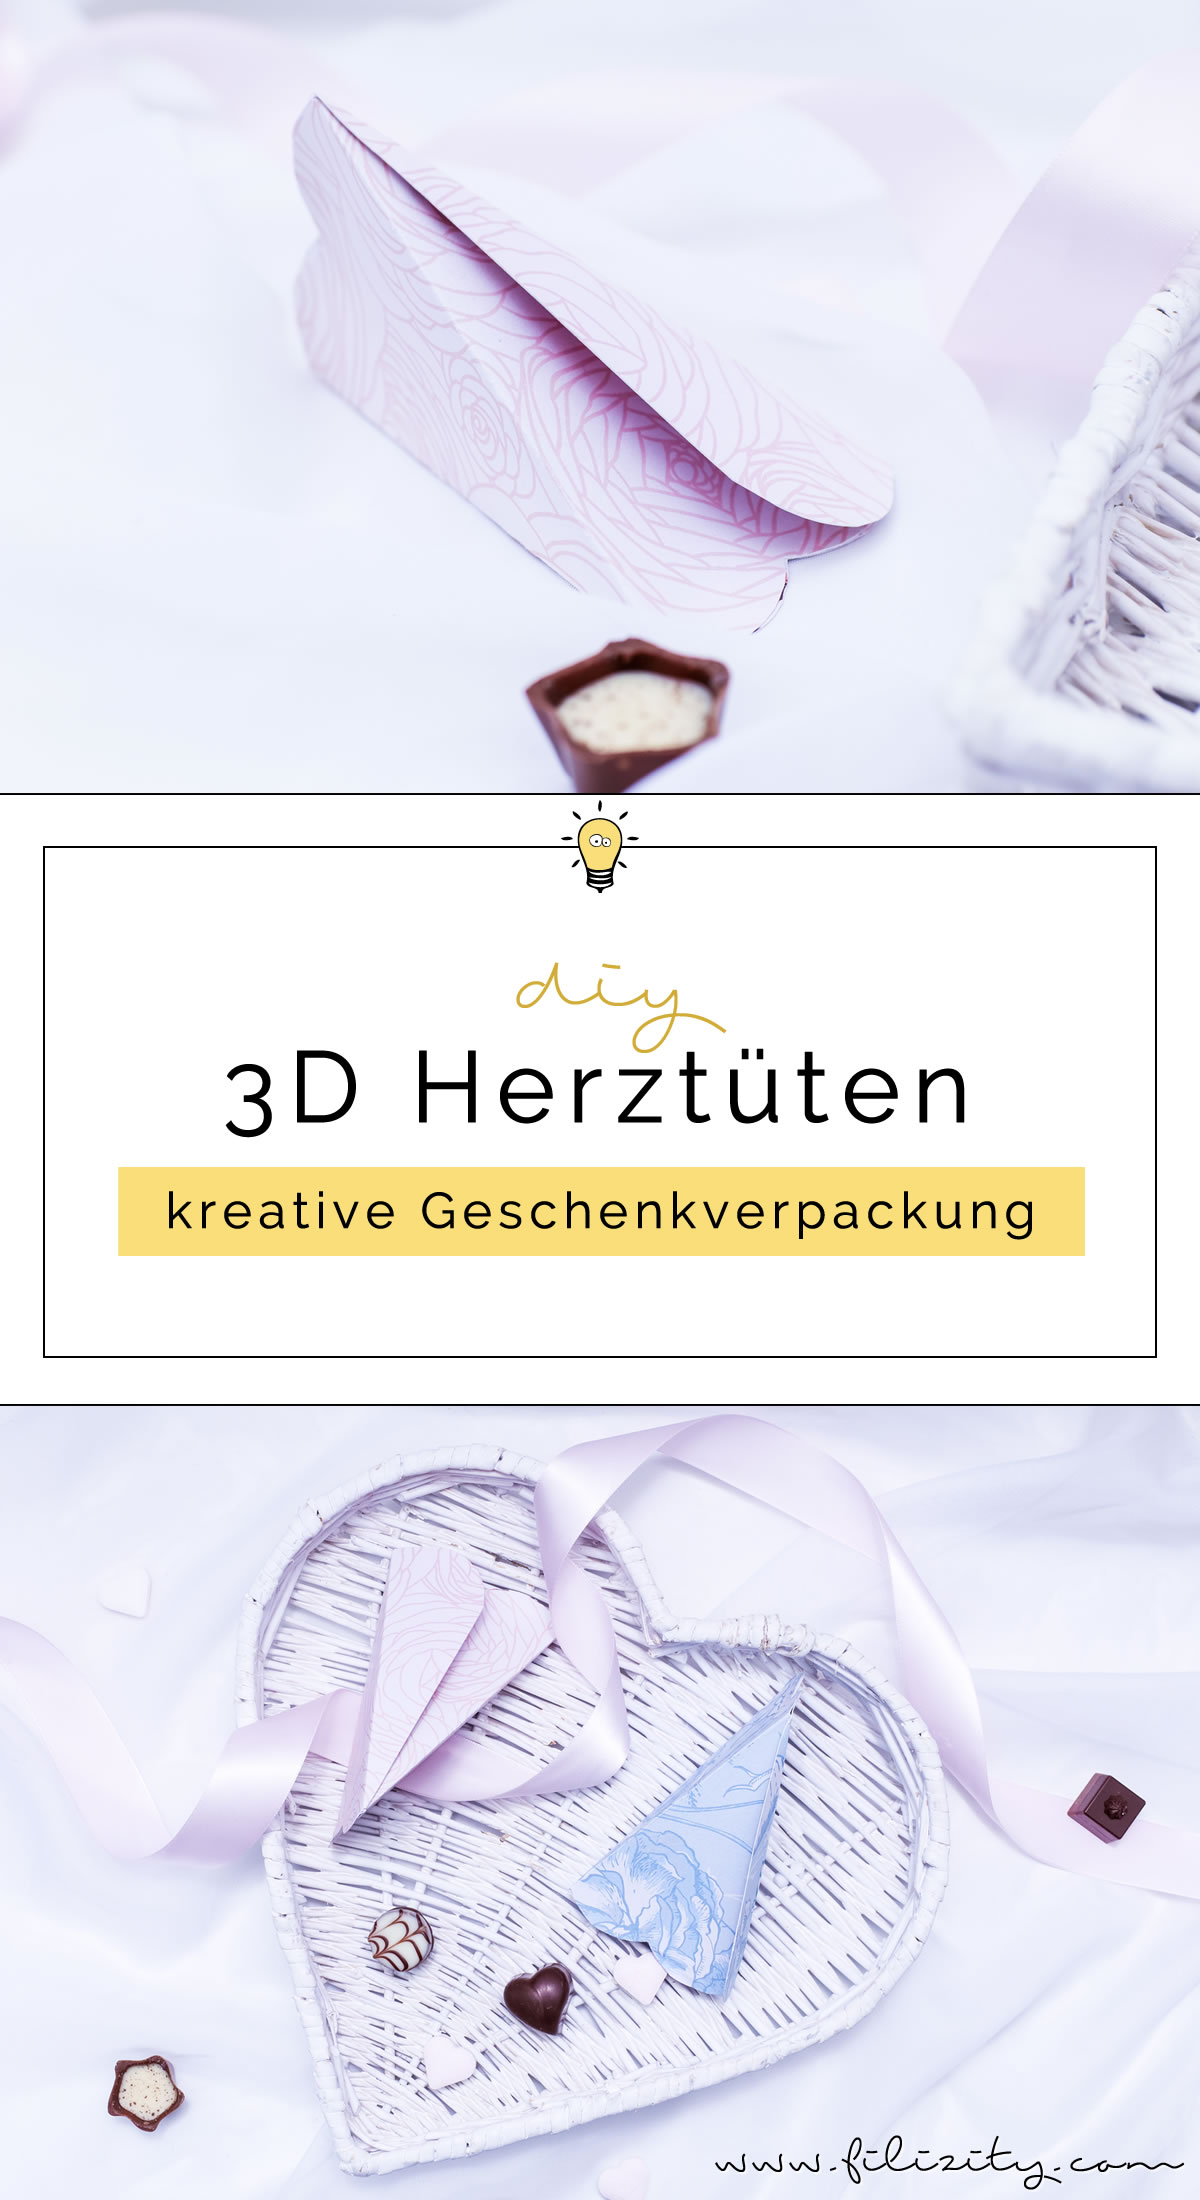 diy geschenkverpackung f r valentinstag 3d herzt ten falten diy blog aus dem. Black Bedroom Furniture Sets. Home Design Ideas